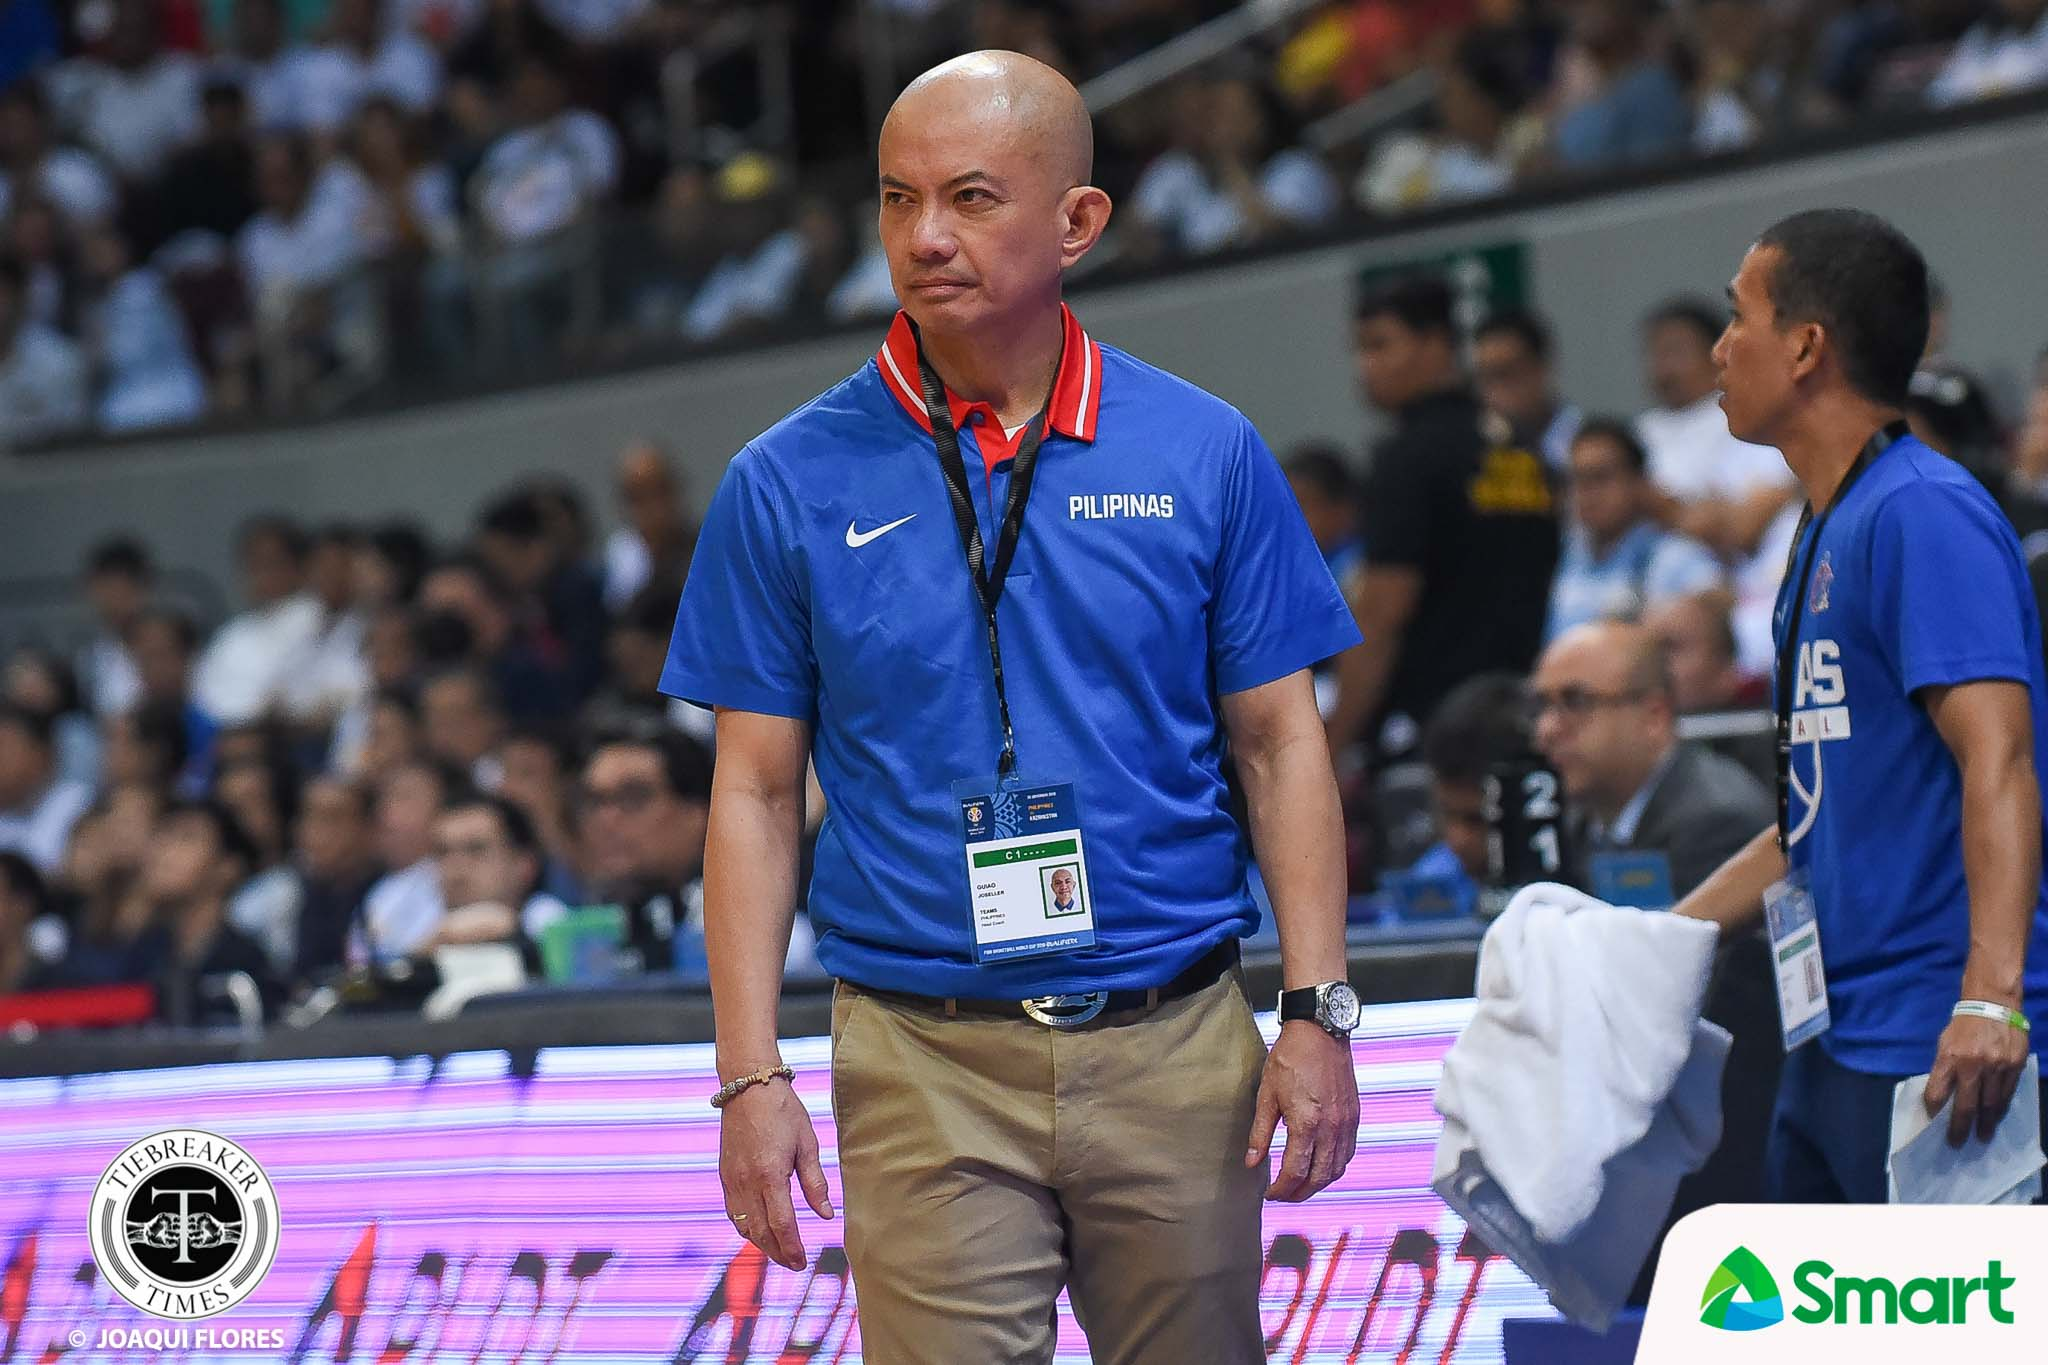 Tiebreaker Times Yeng Guiao takes responsibility for Gilas loss 2019 FIBA World Cup Qualifiers Basketball Gilas Pilipinas News  Yeng Guiao Gilas Elite 2019 FIBA World Cup Qualifiers